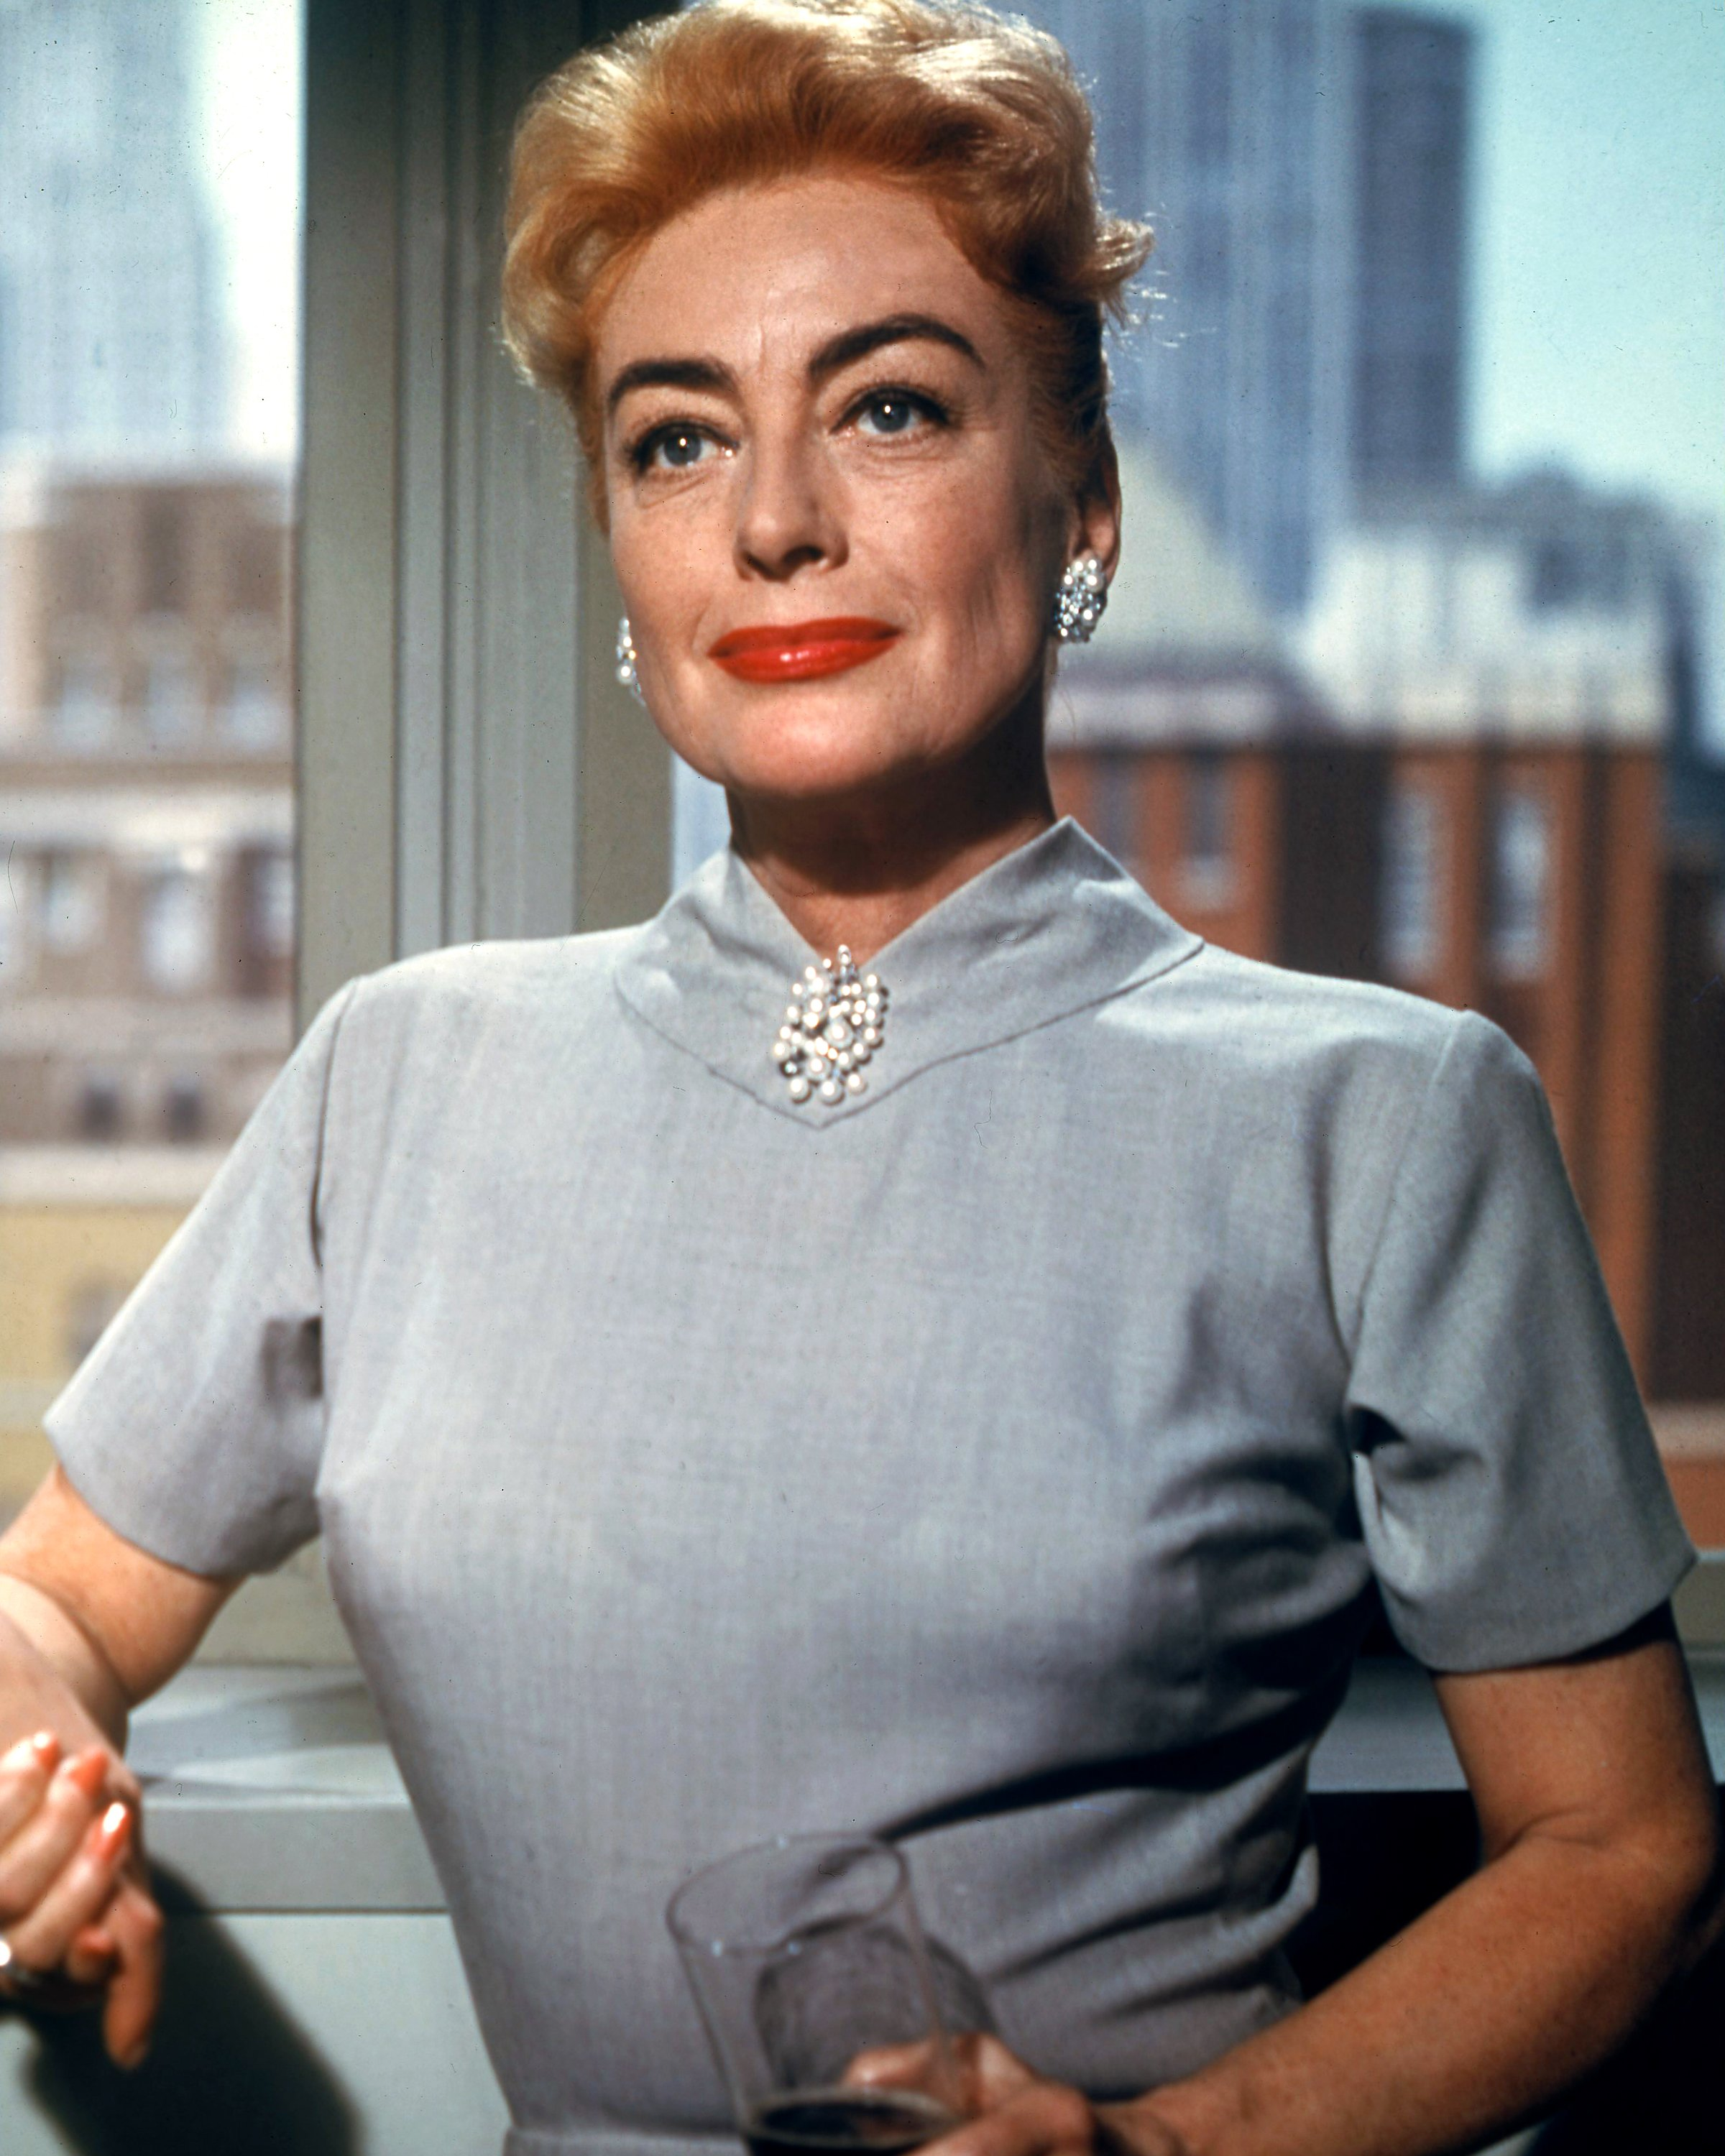 American actress Joan Crawford (1905 - 1977) in a promotional still from 'The Best Of Everything', directed by Jean Negulesco, 1959.   Source: Getty Images